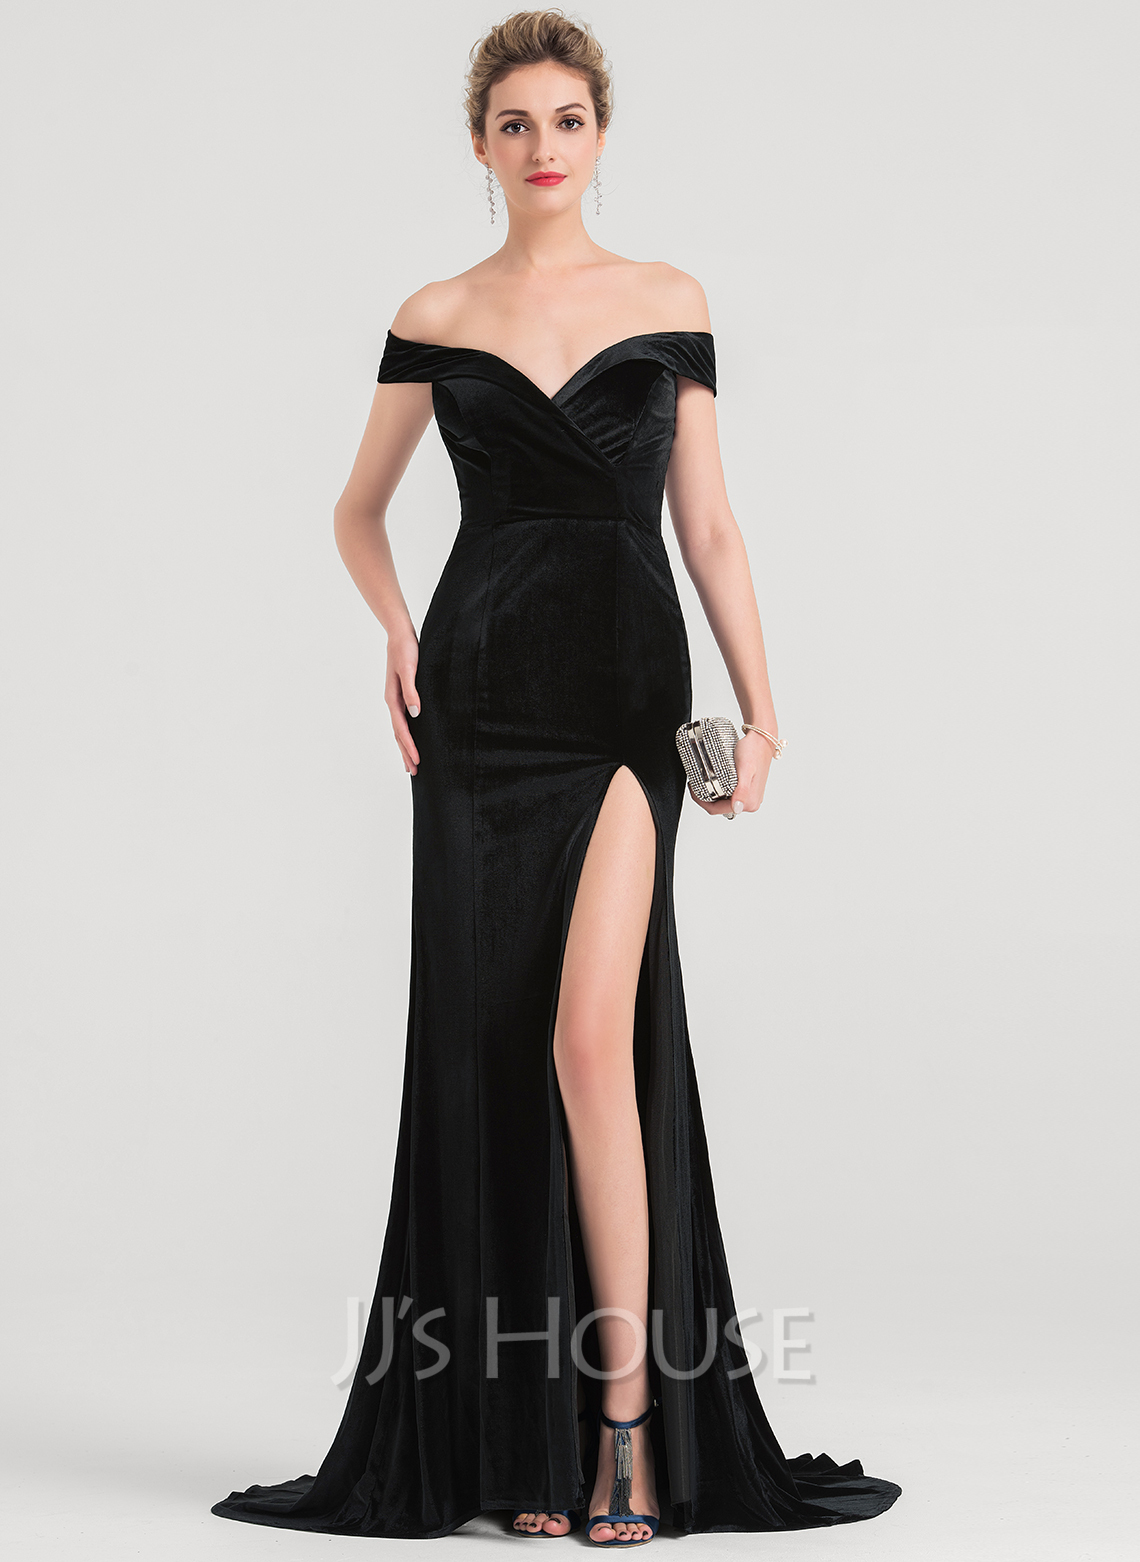 e202a4305225 Trumpet/Mermaid Off-the-Shoulder Sweep Train Velvet Prom Dresses With Split  Front. Loading zoom